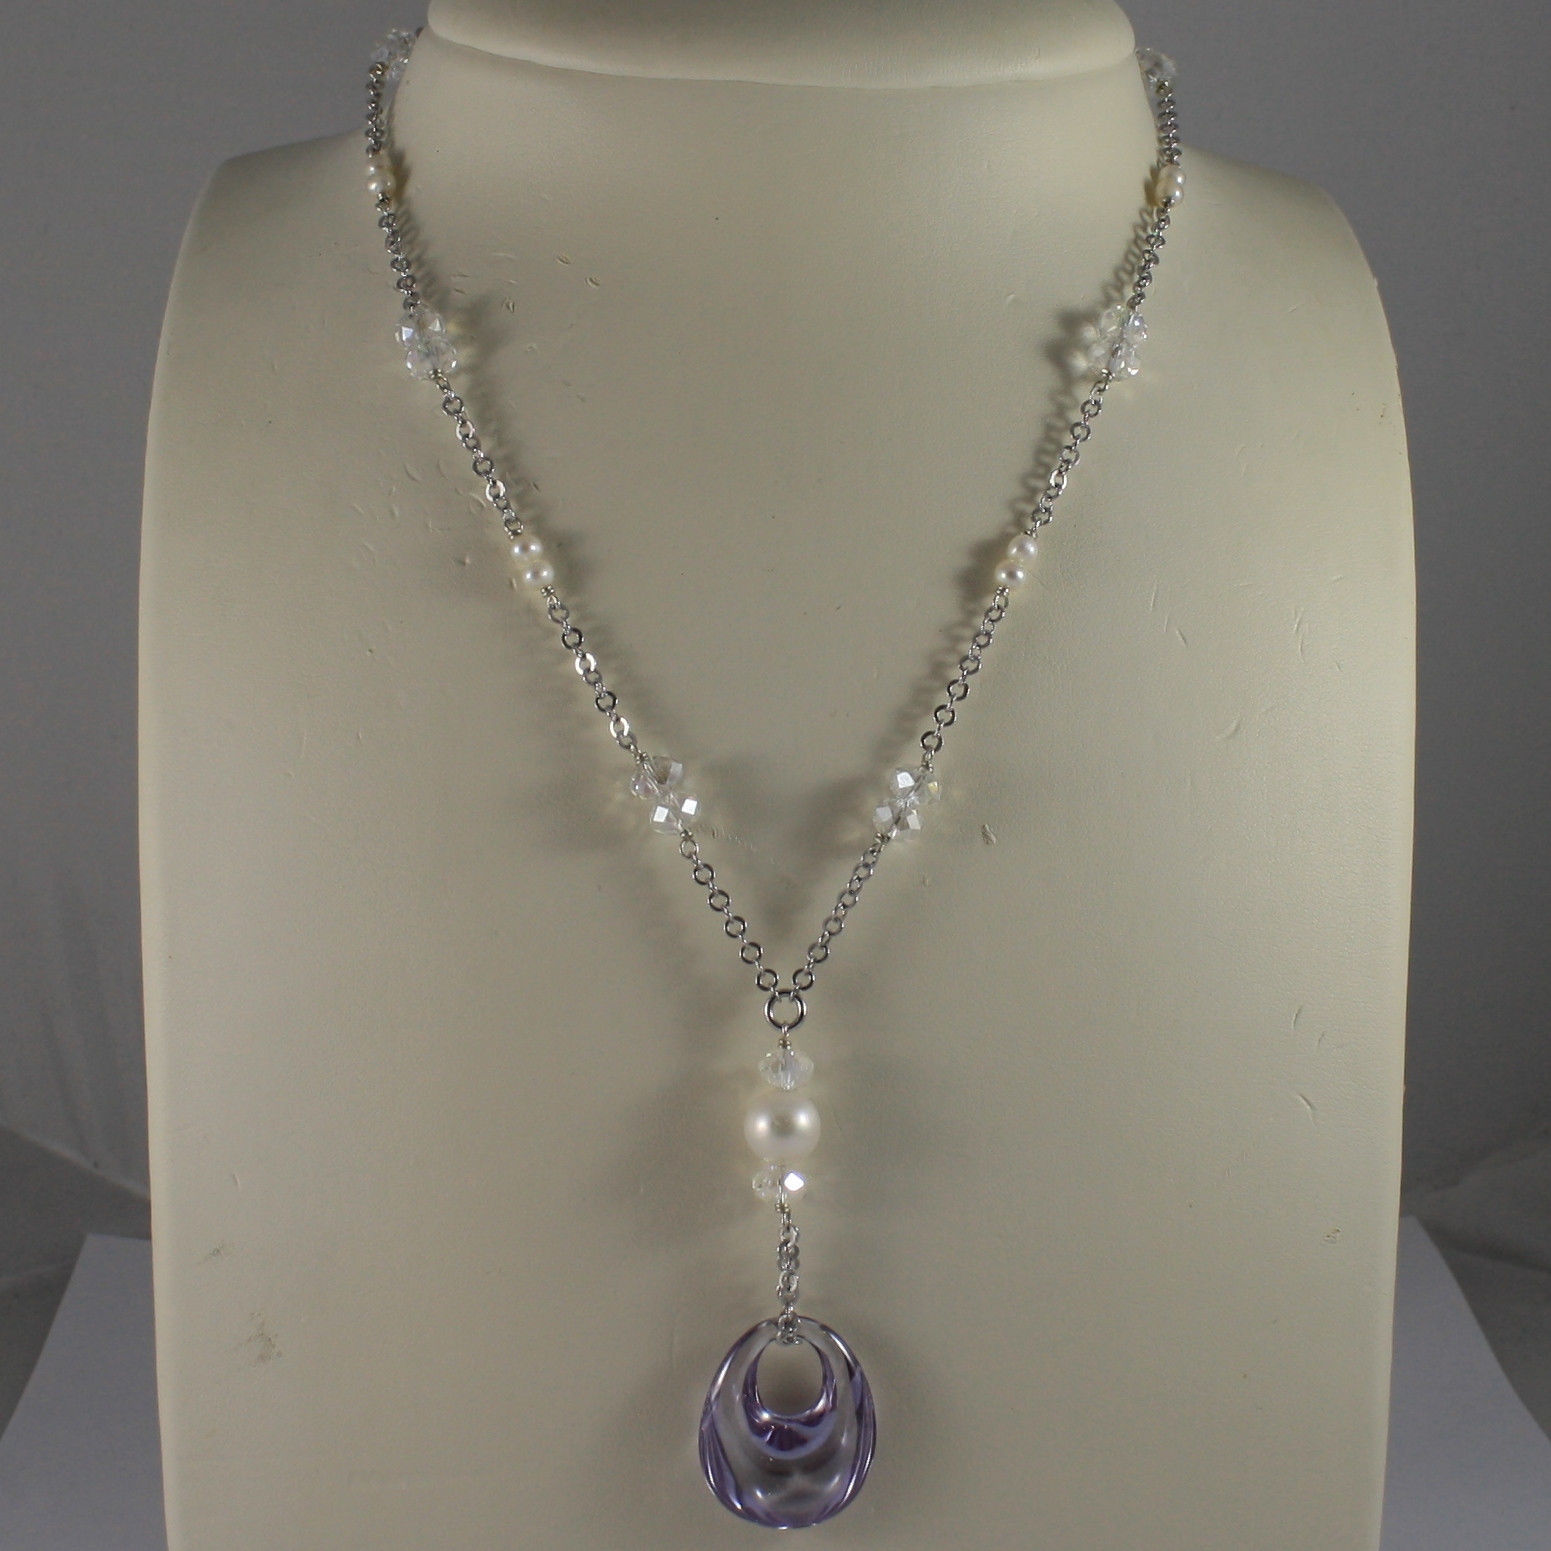 .925 SILVER RHODIUM NECKLACE WITH TRANSPARENT CRYSTALS, PEARLS AND DROP ZIRCON